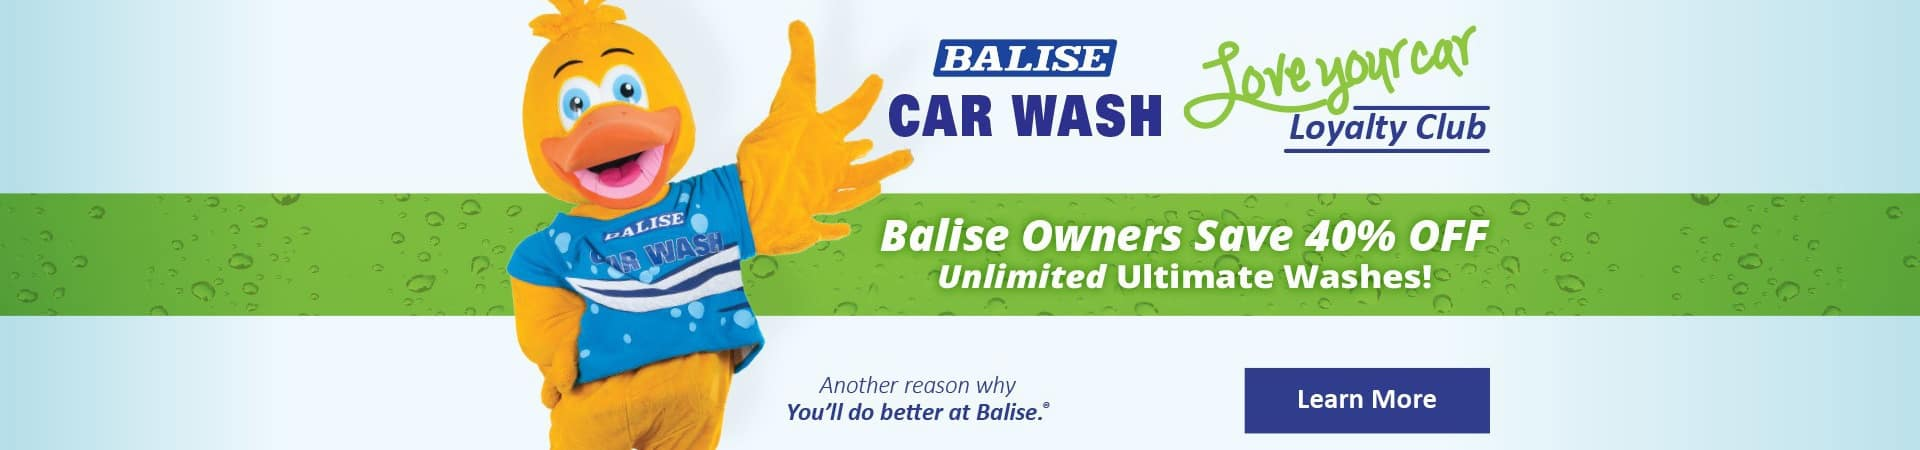 Balise Car Wash Loyalty Club